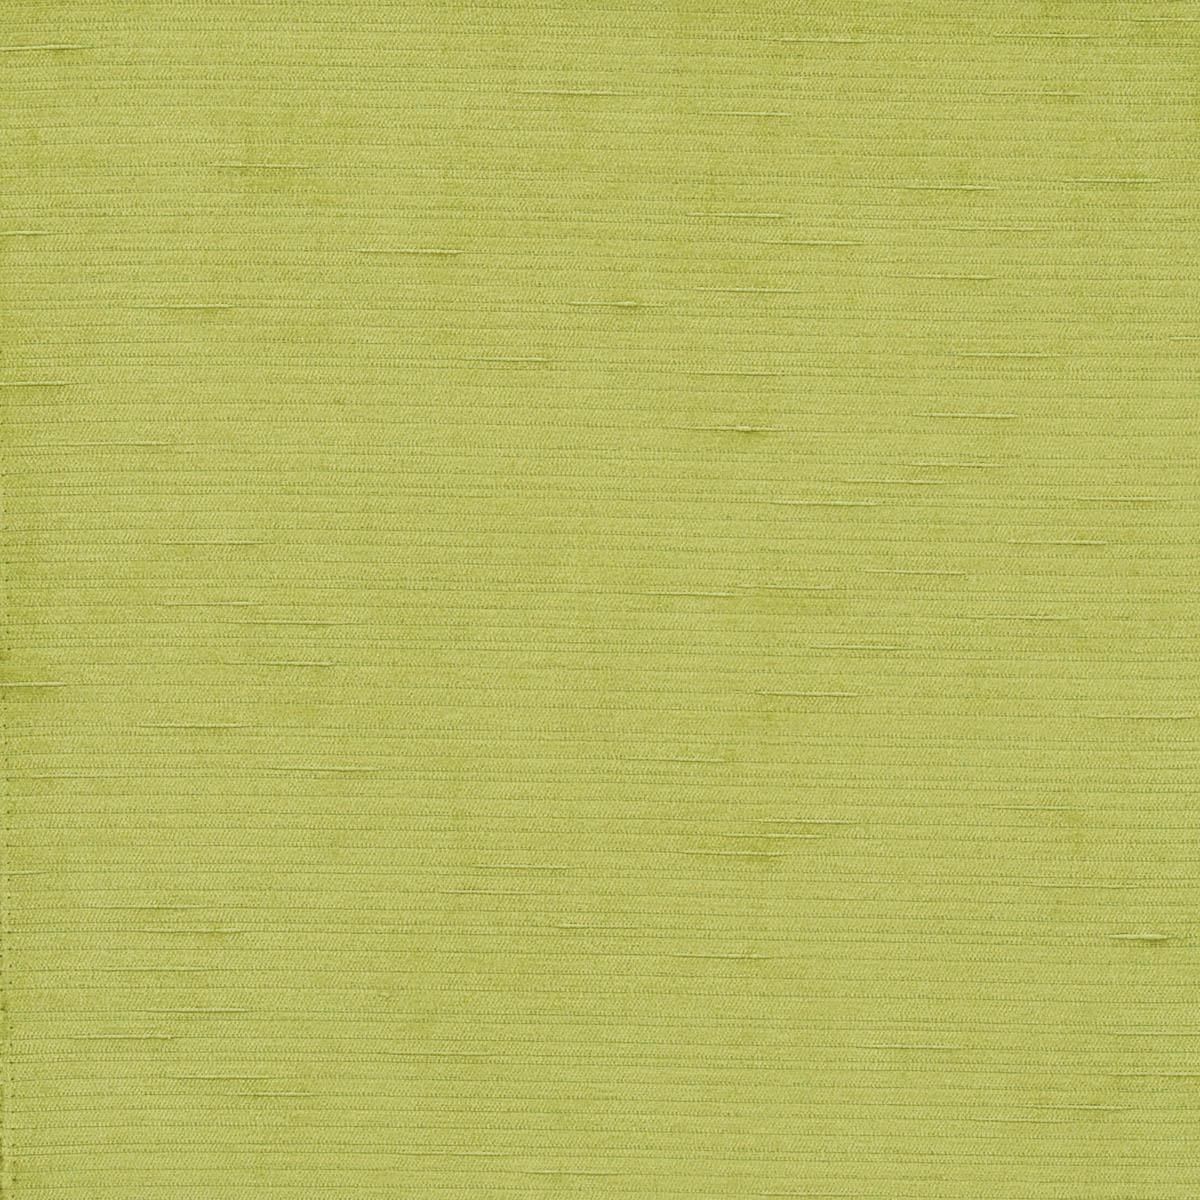 SMD Fabrics Passion Velvet Curtain Fabric Lime Picture